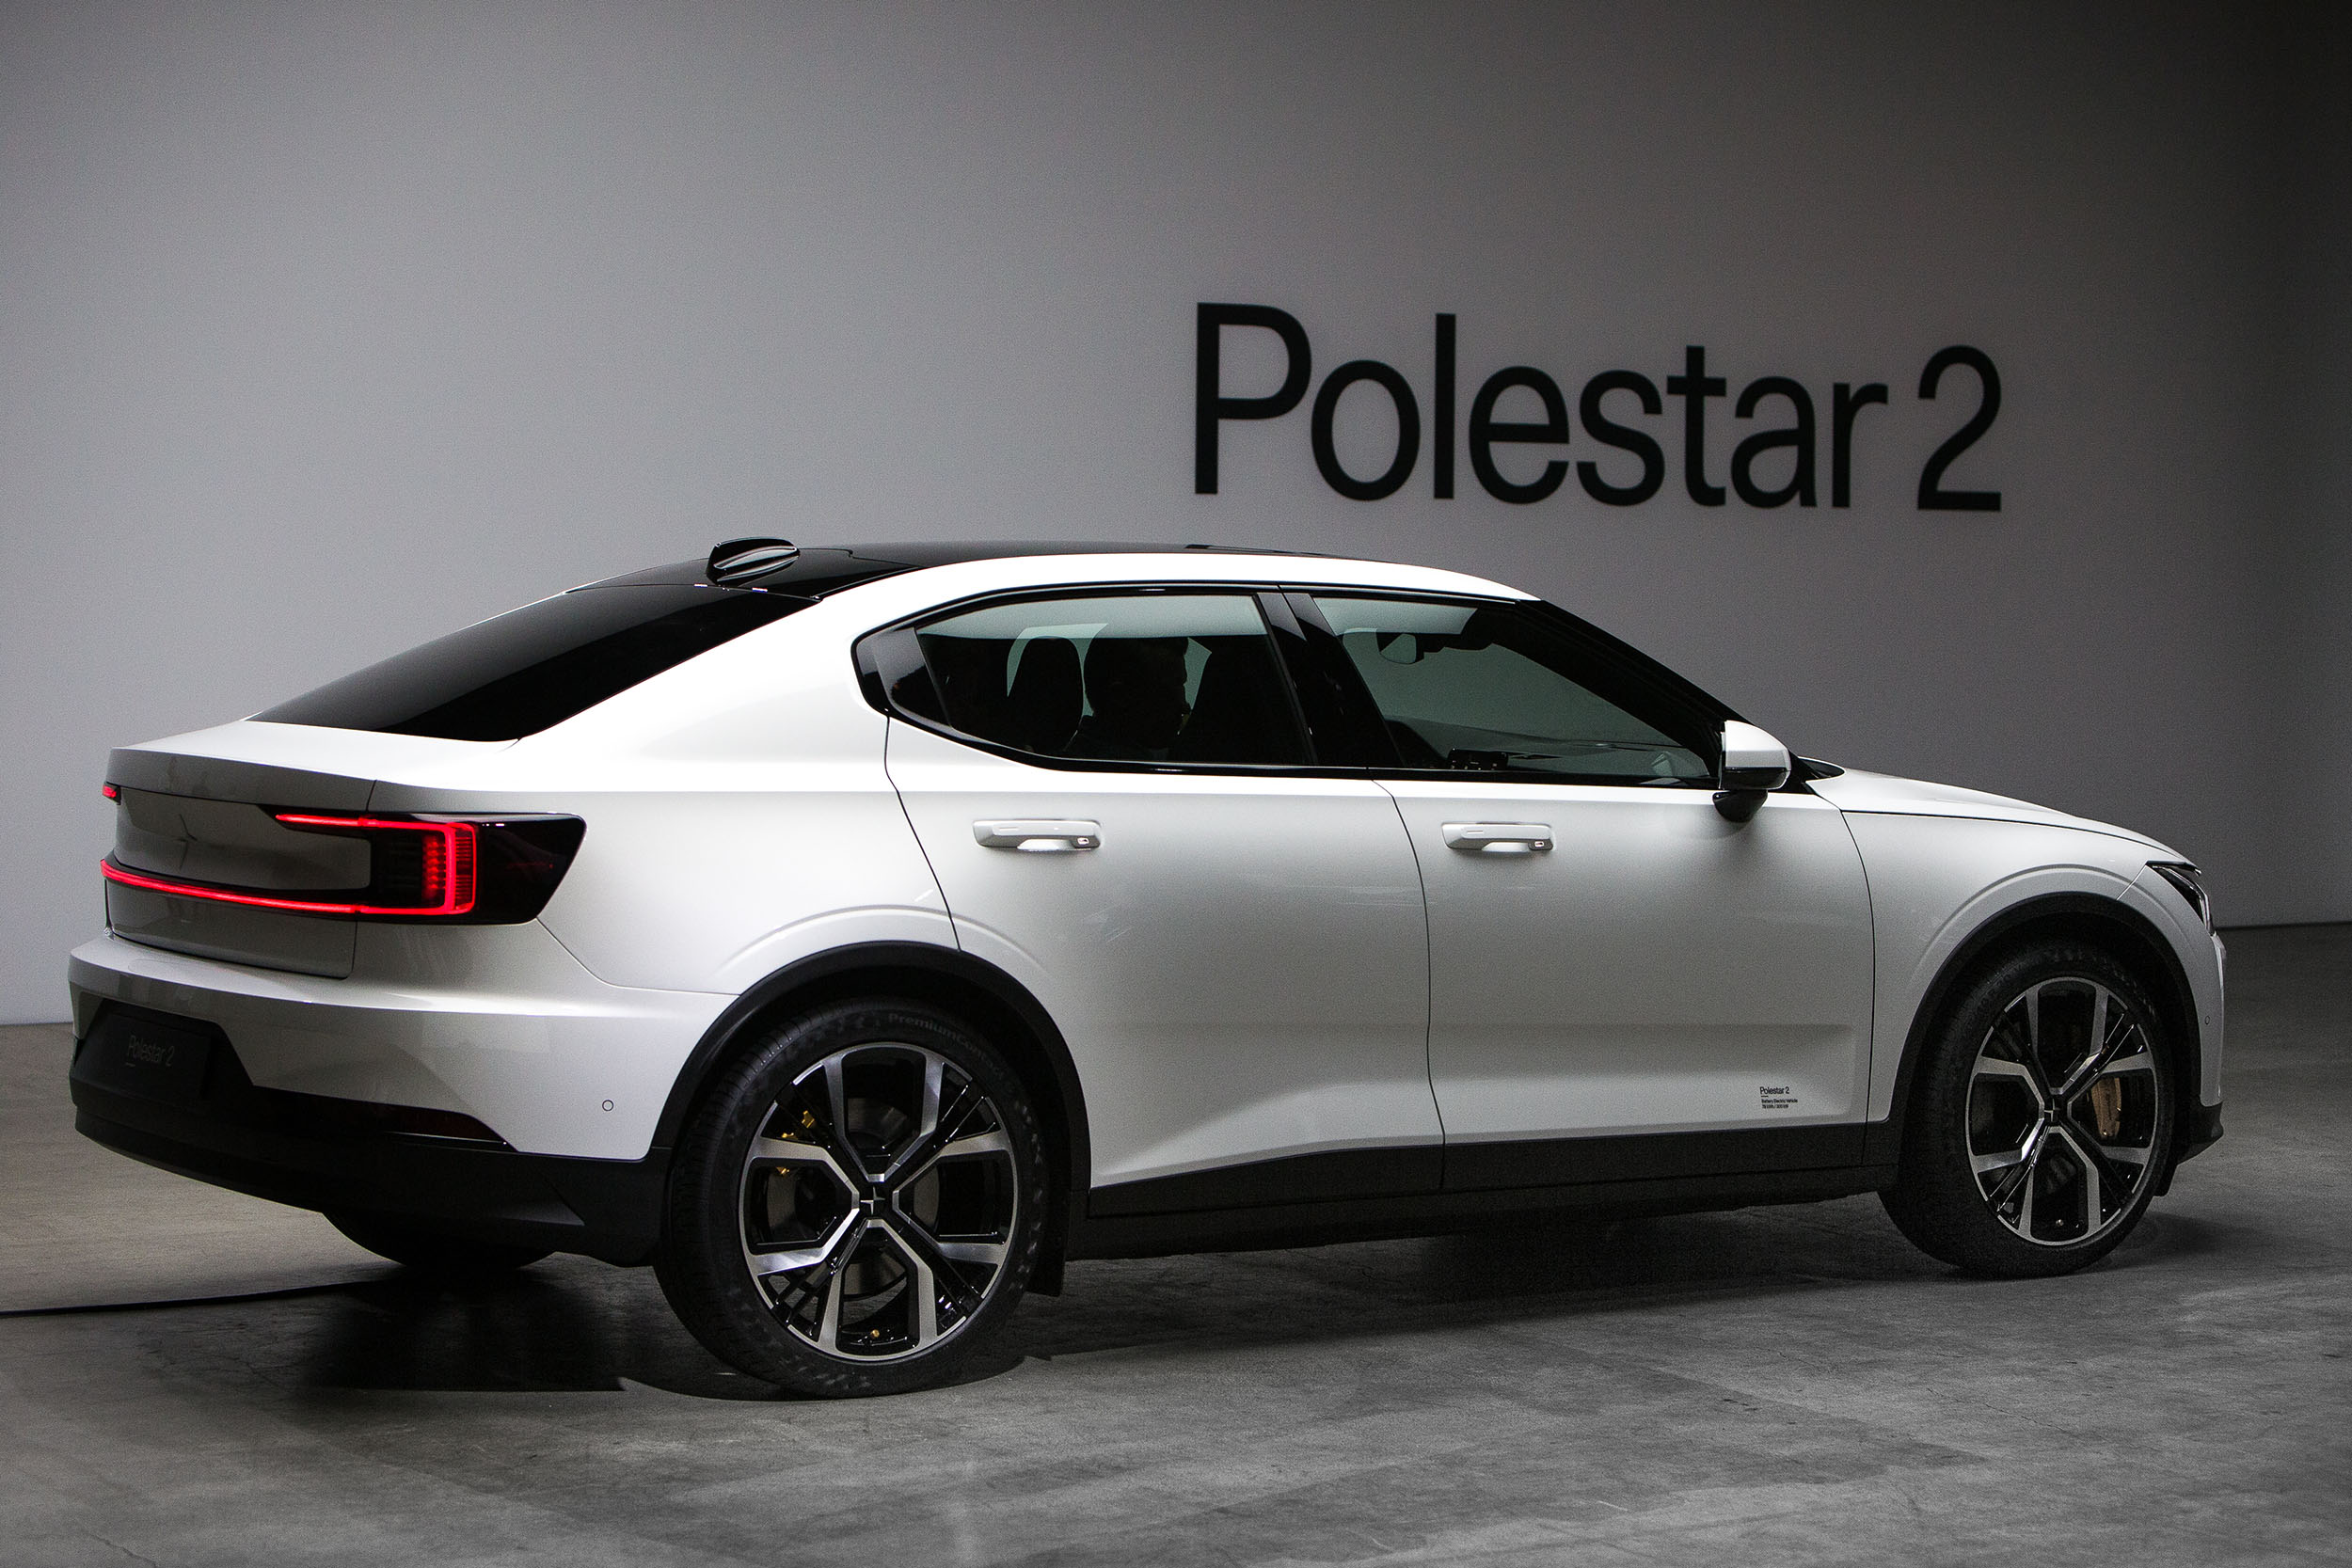 6 things you need to know about Polestar